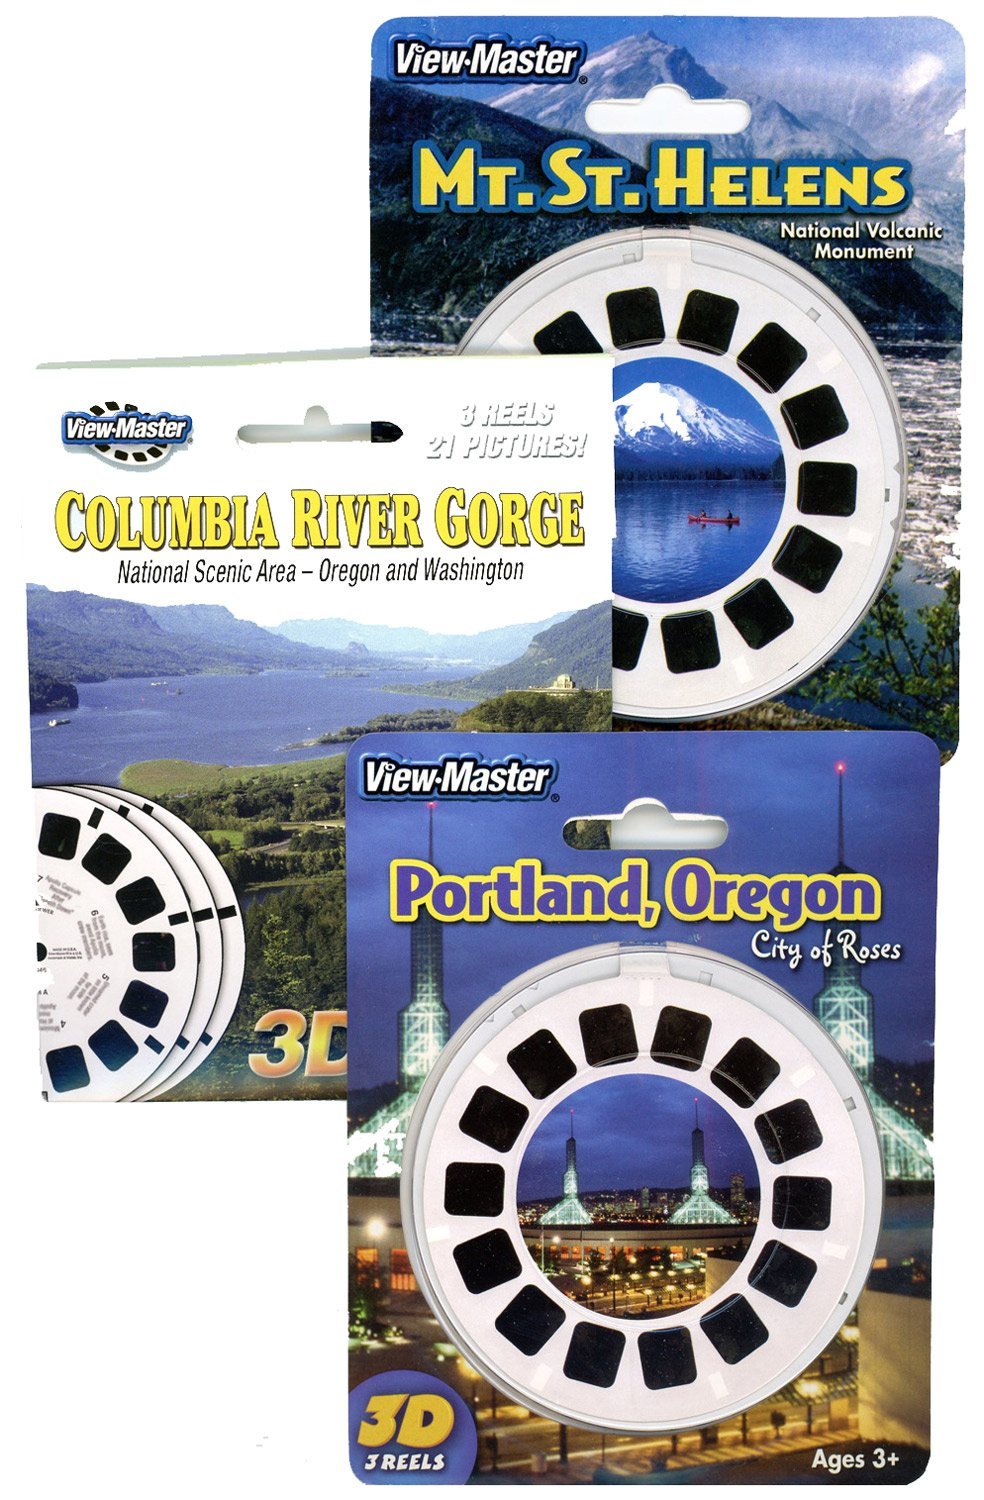 Mt. St. Helens - Columbia River - Portland - Triple Vintage ViewMaster Set - 9 Reels by 3Dstereo ViewMaster (Image #1)